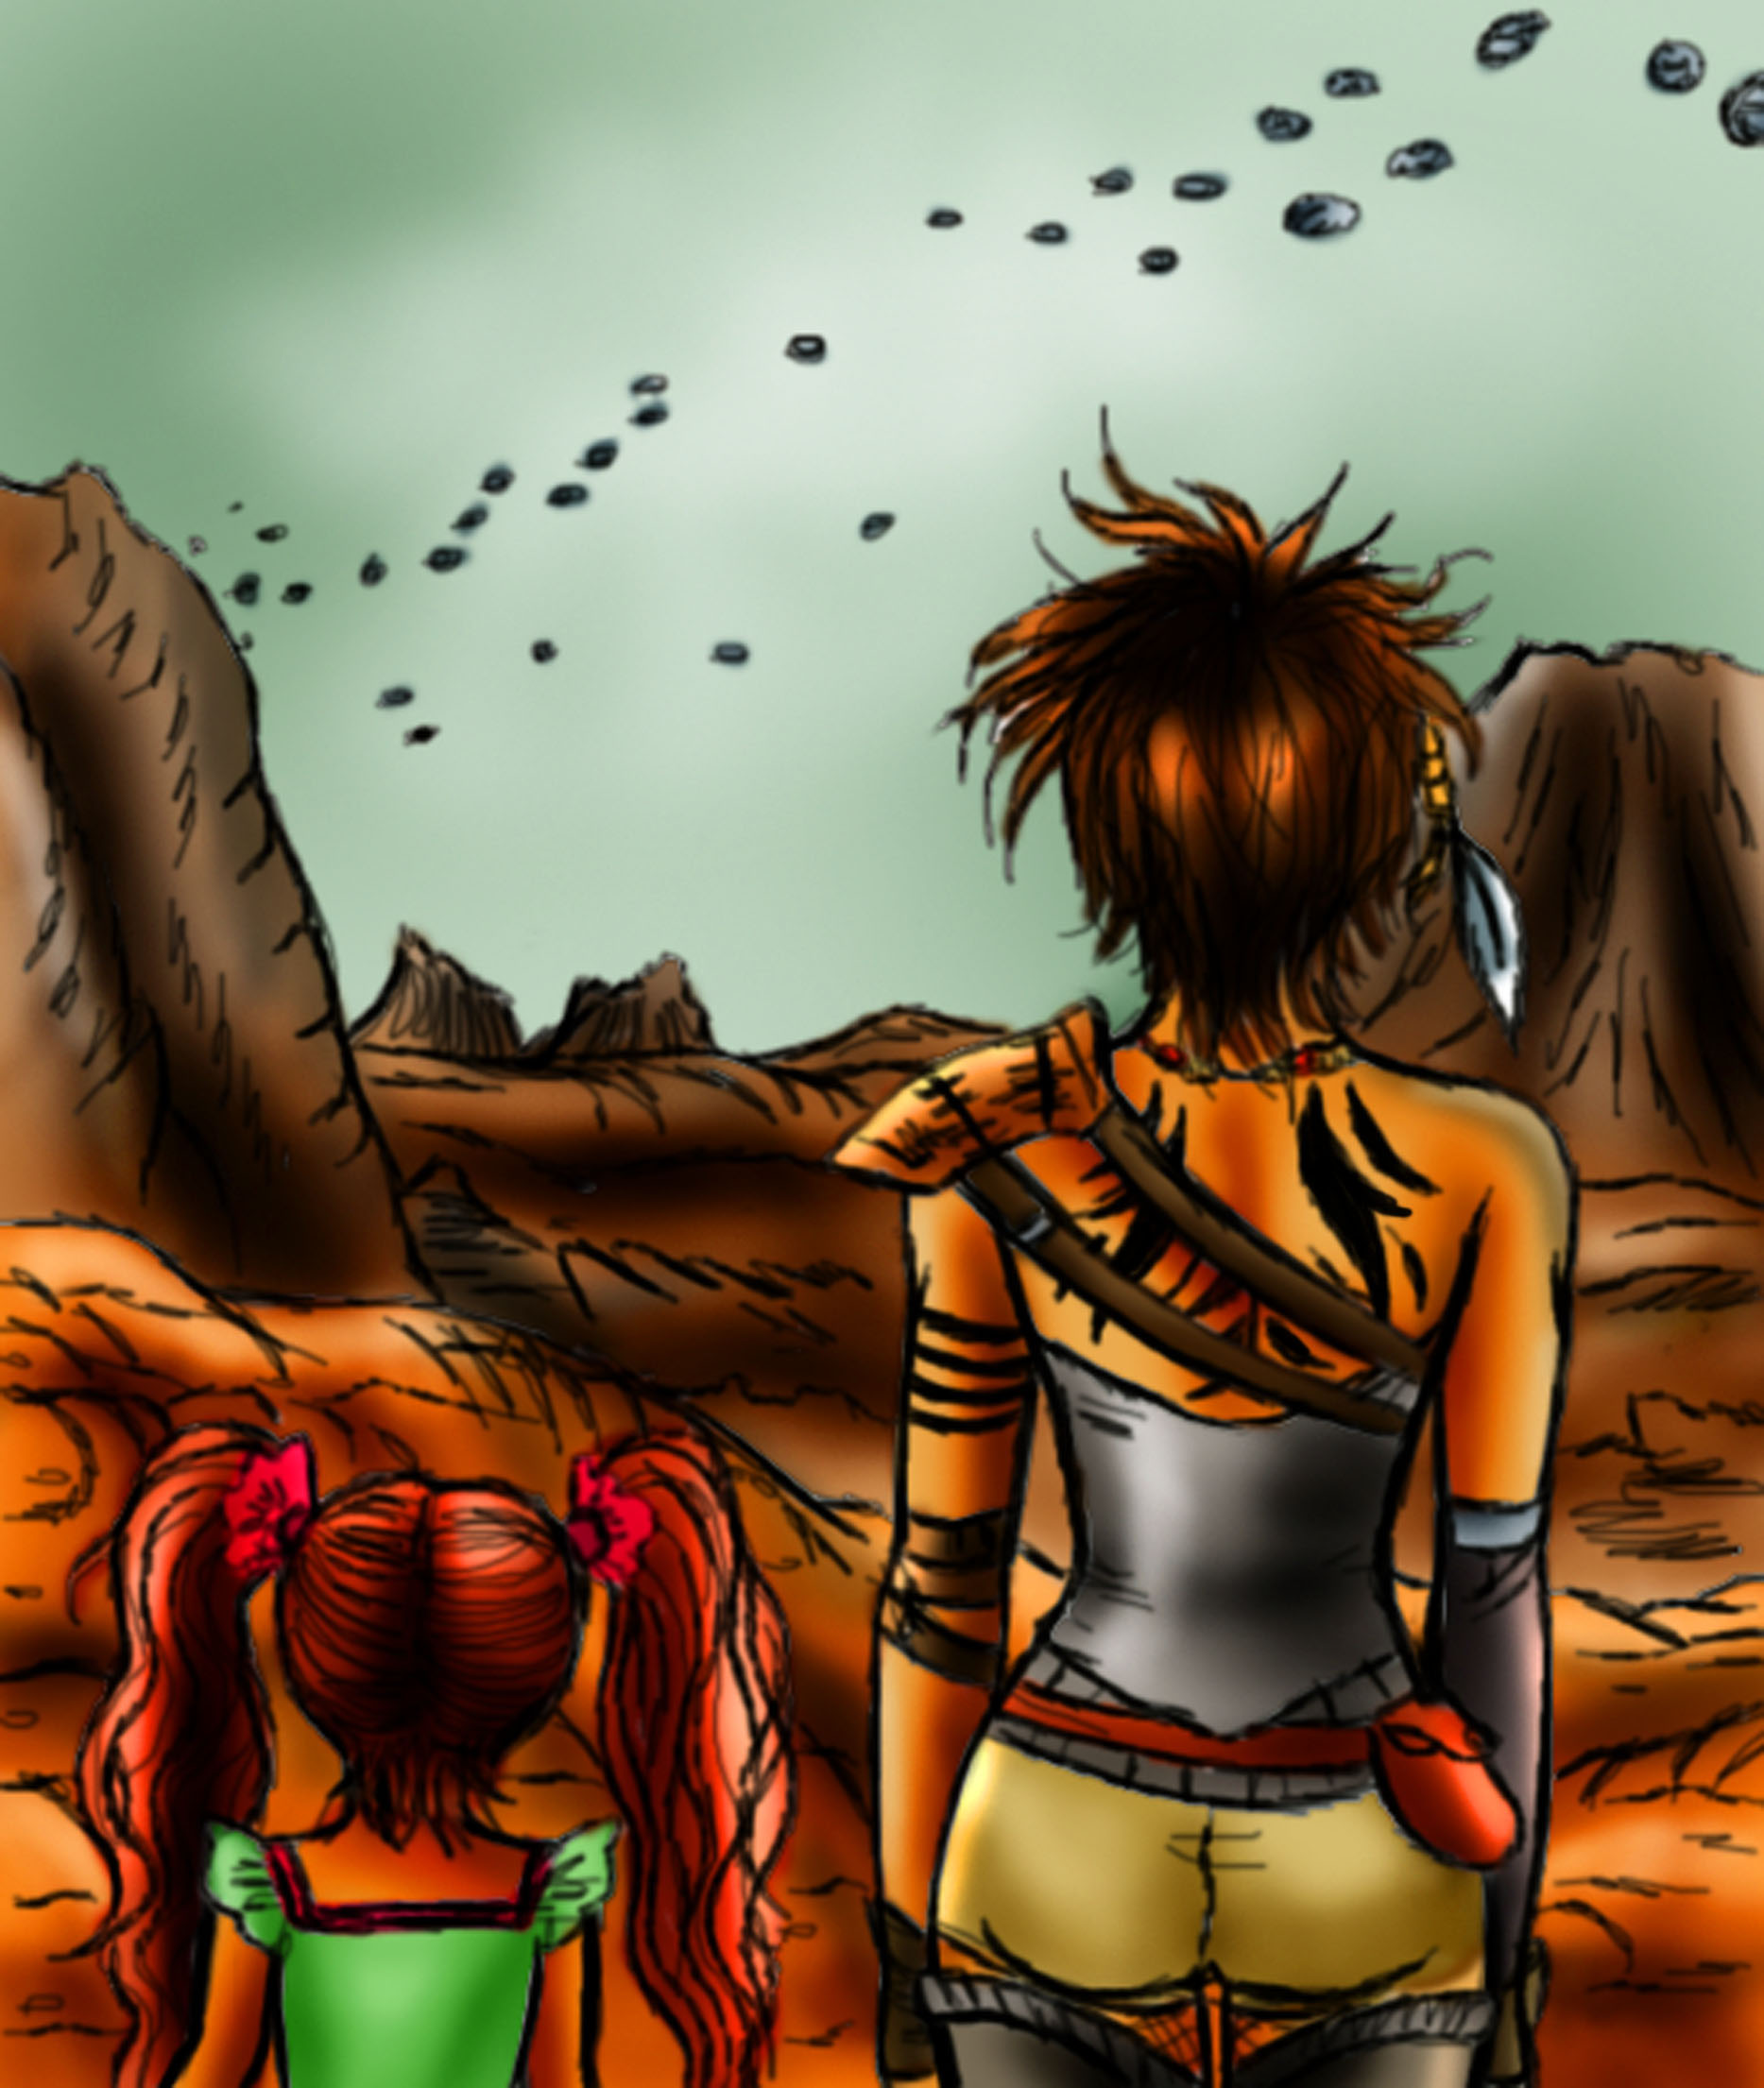 Apocalyptic clipart comic person Day post 365 Post (in